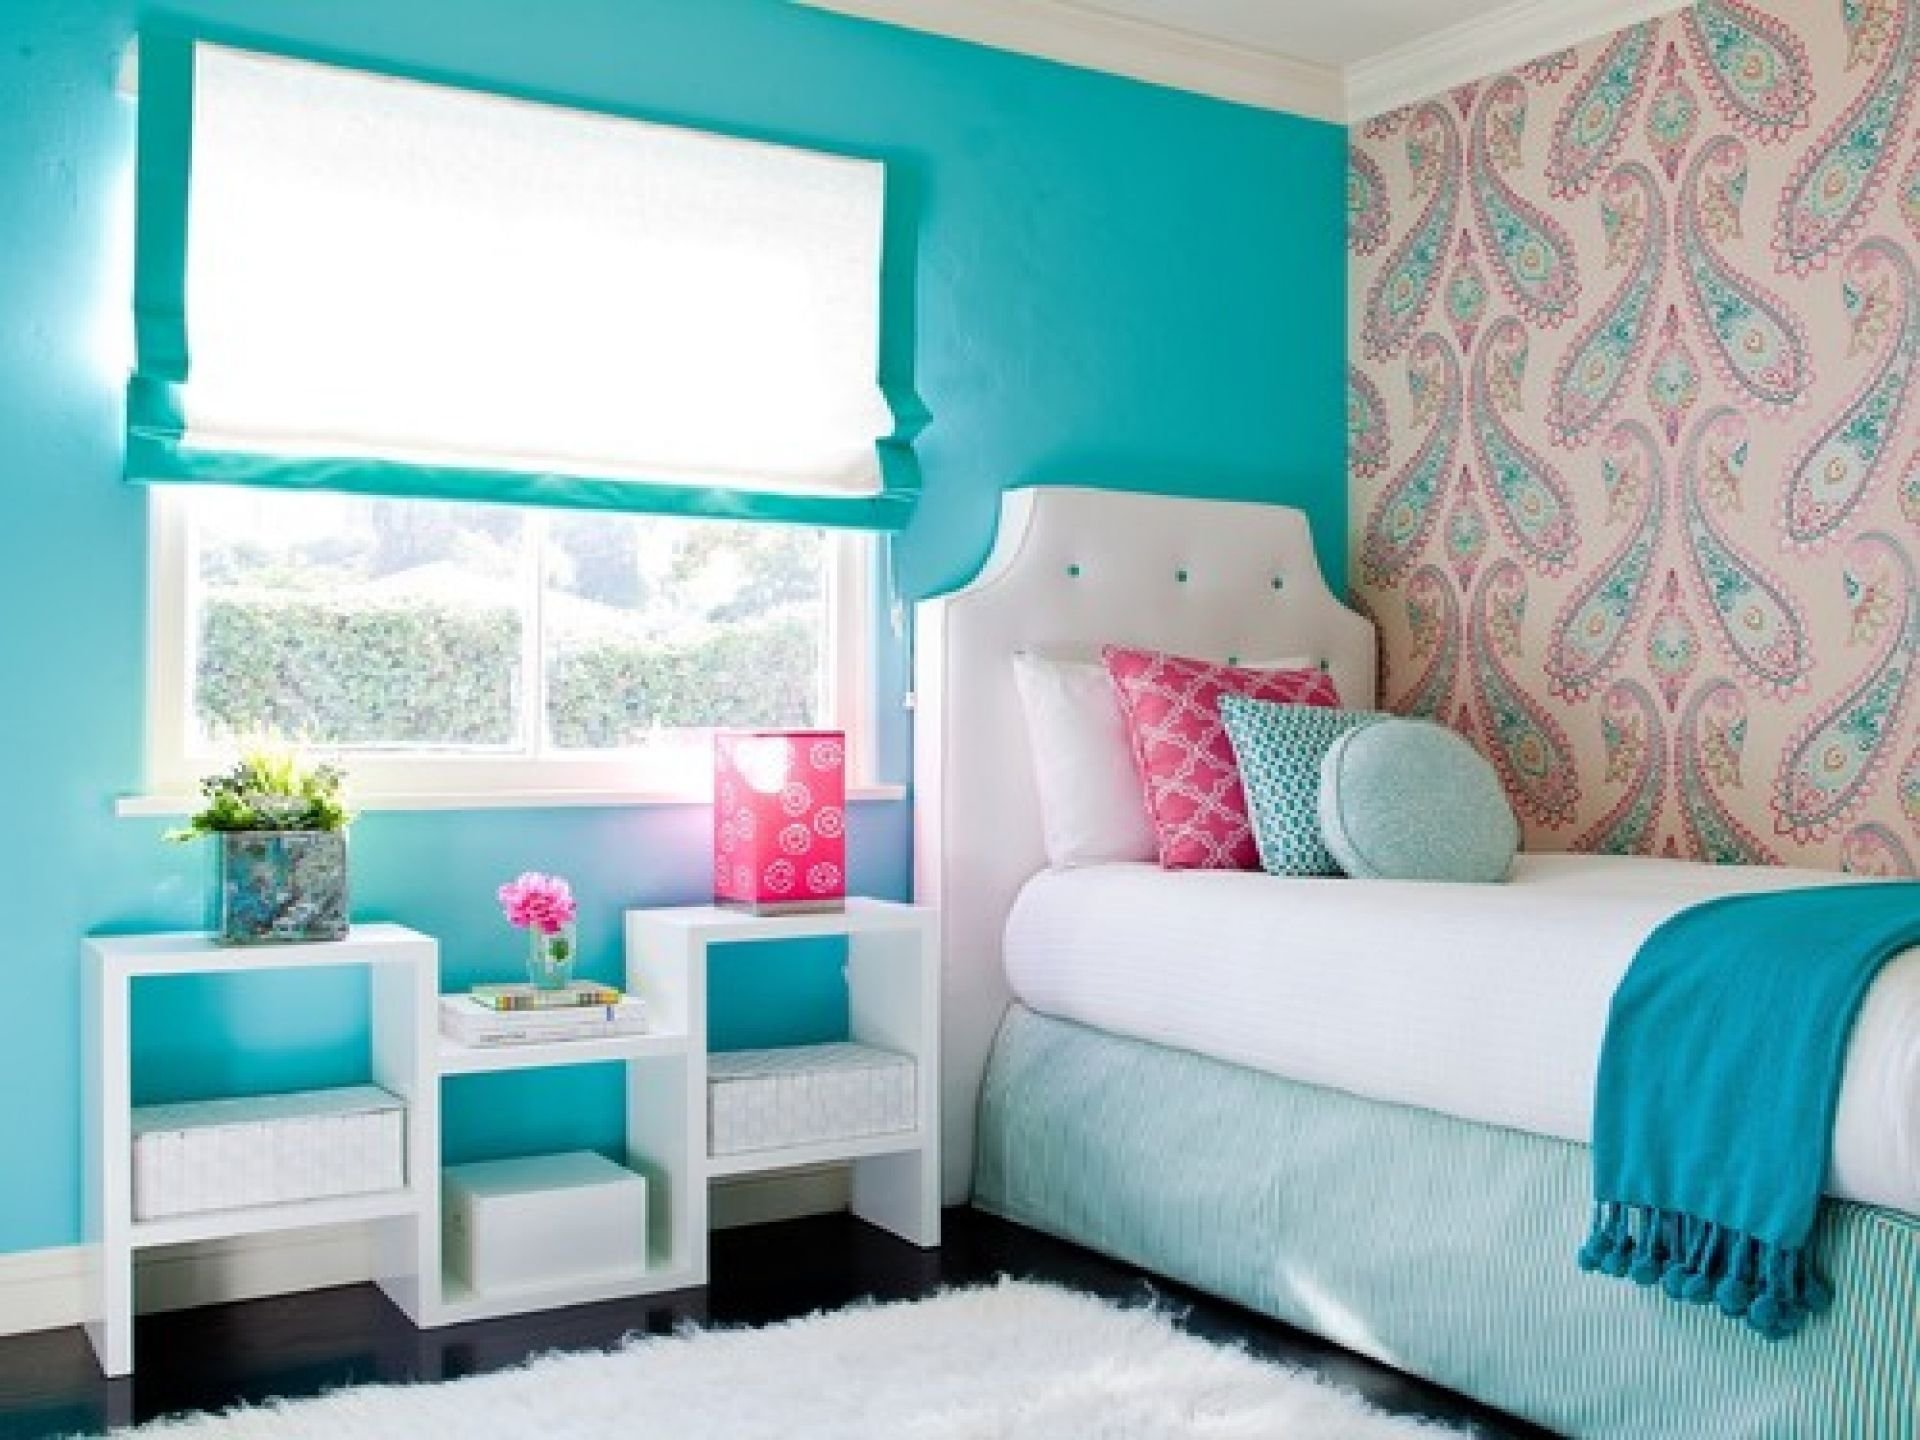 Best Simple Design Comfy Room Colors Teenage Girl Bedroom Wall Paint Ideas Colors For Bedrooms For With Pictures